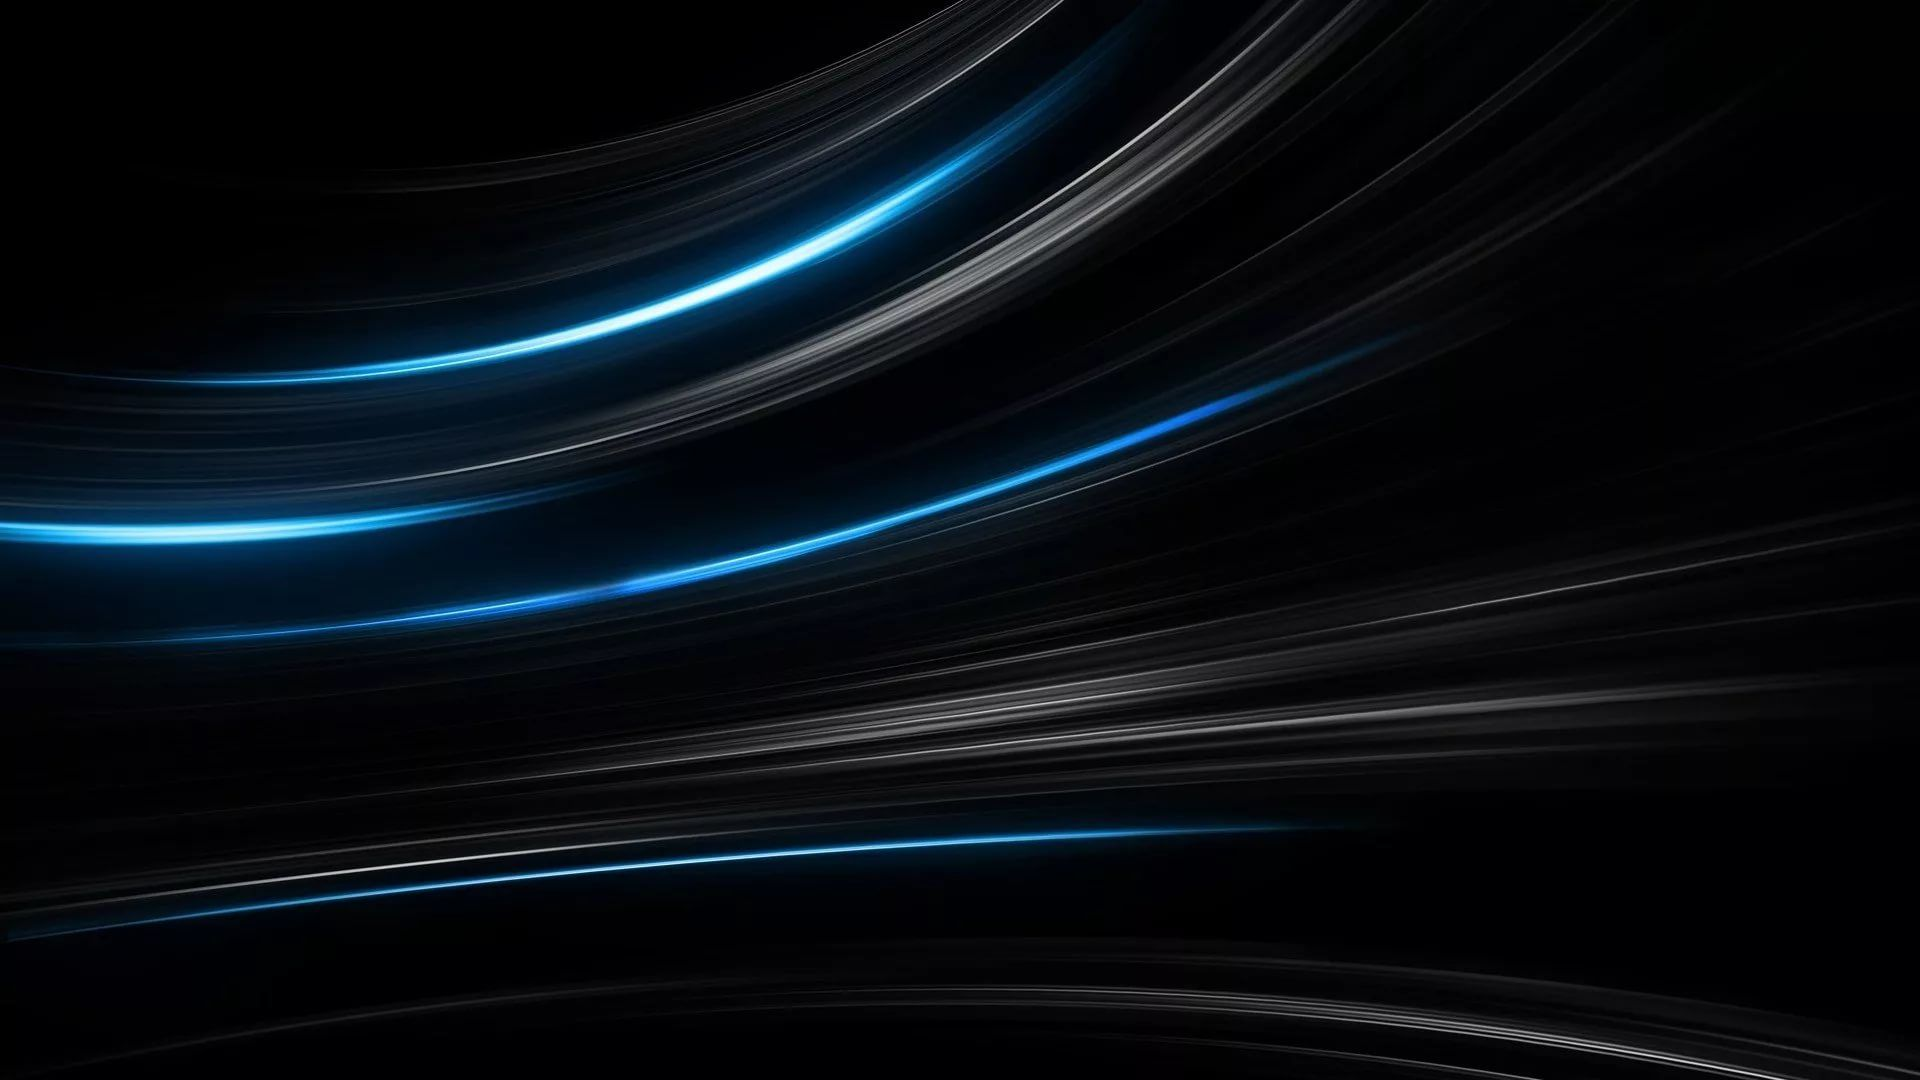 Black And Blue Free Wallpaper